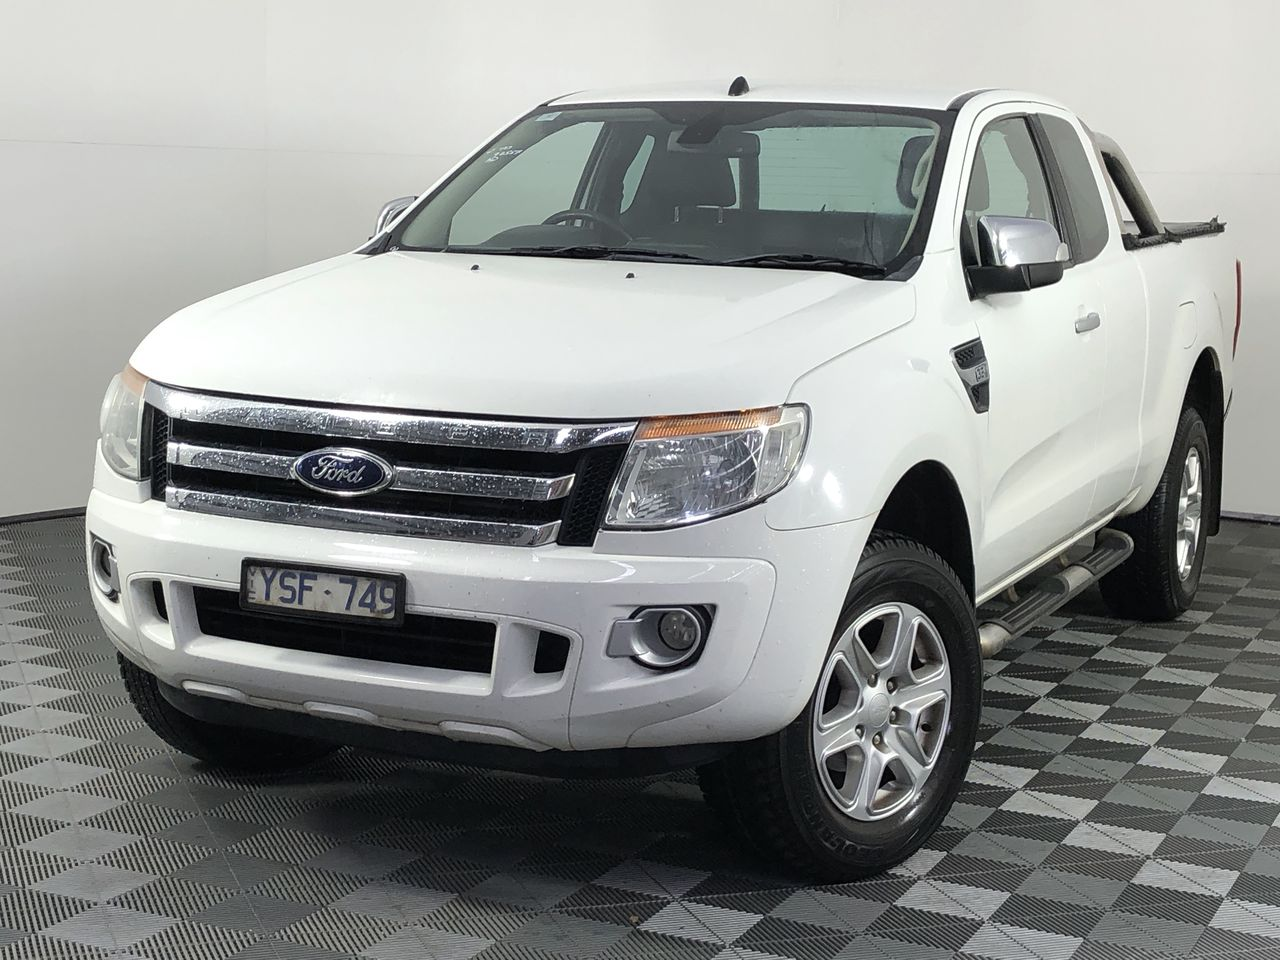 2011 Ford Ranger XLT 4X2 Hi-Rider PX Turbo Diesel Automatic Ute